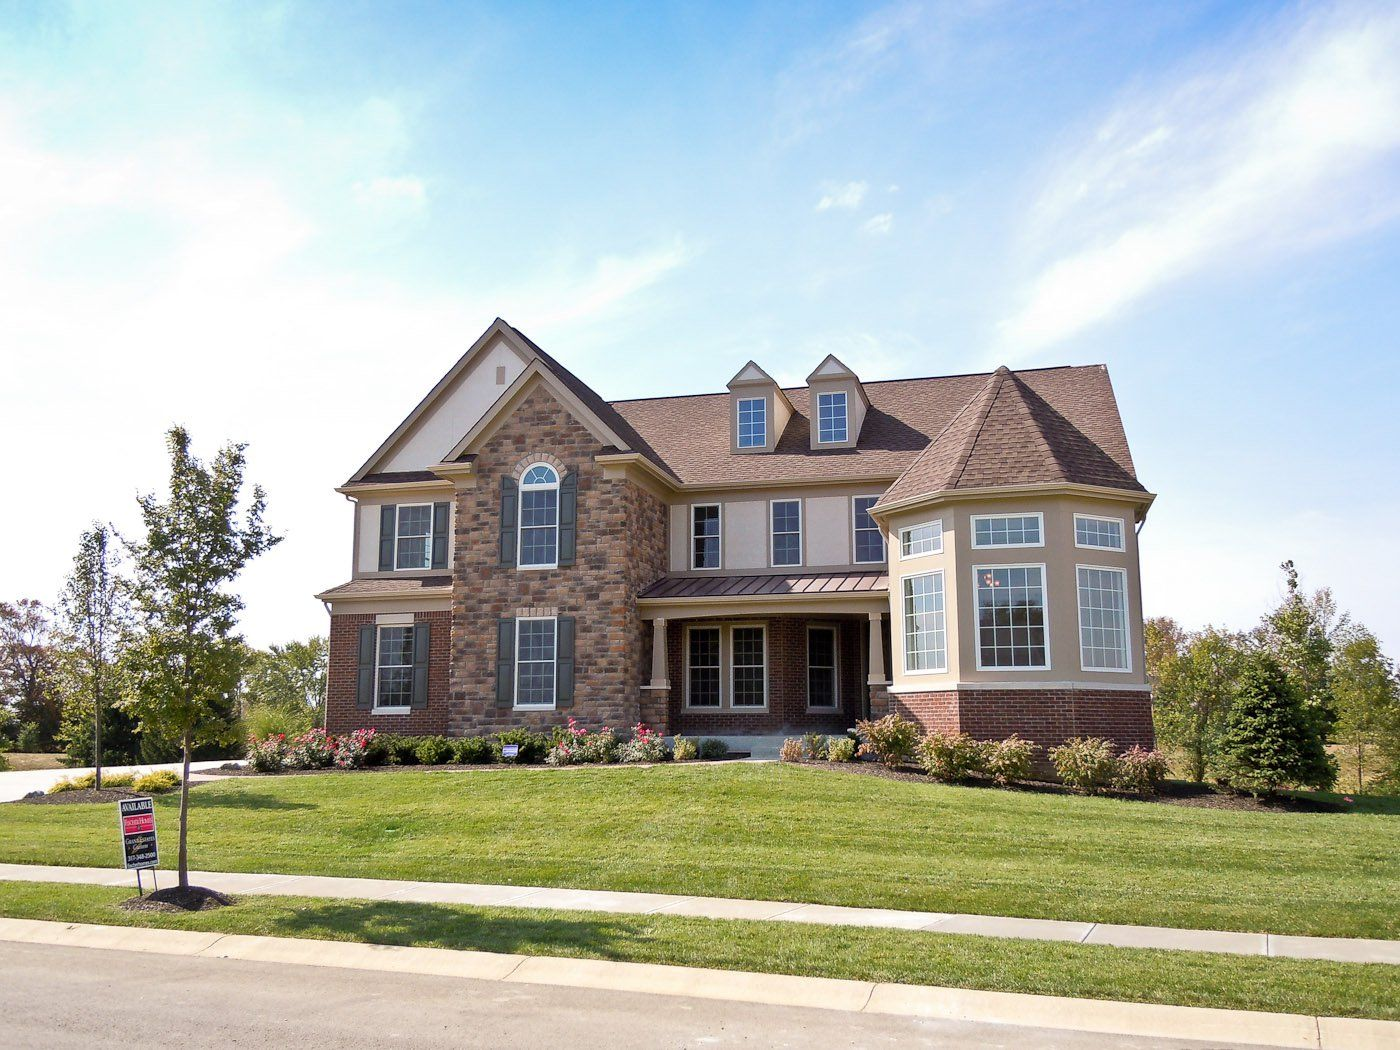 12242 Shady Knoll Drive, Fishers, IN Homes & Land - Real Estate